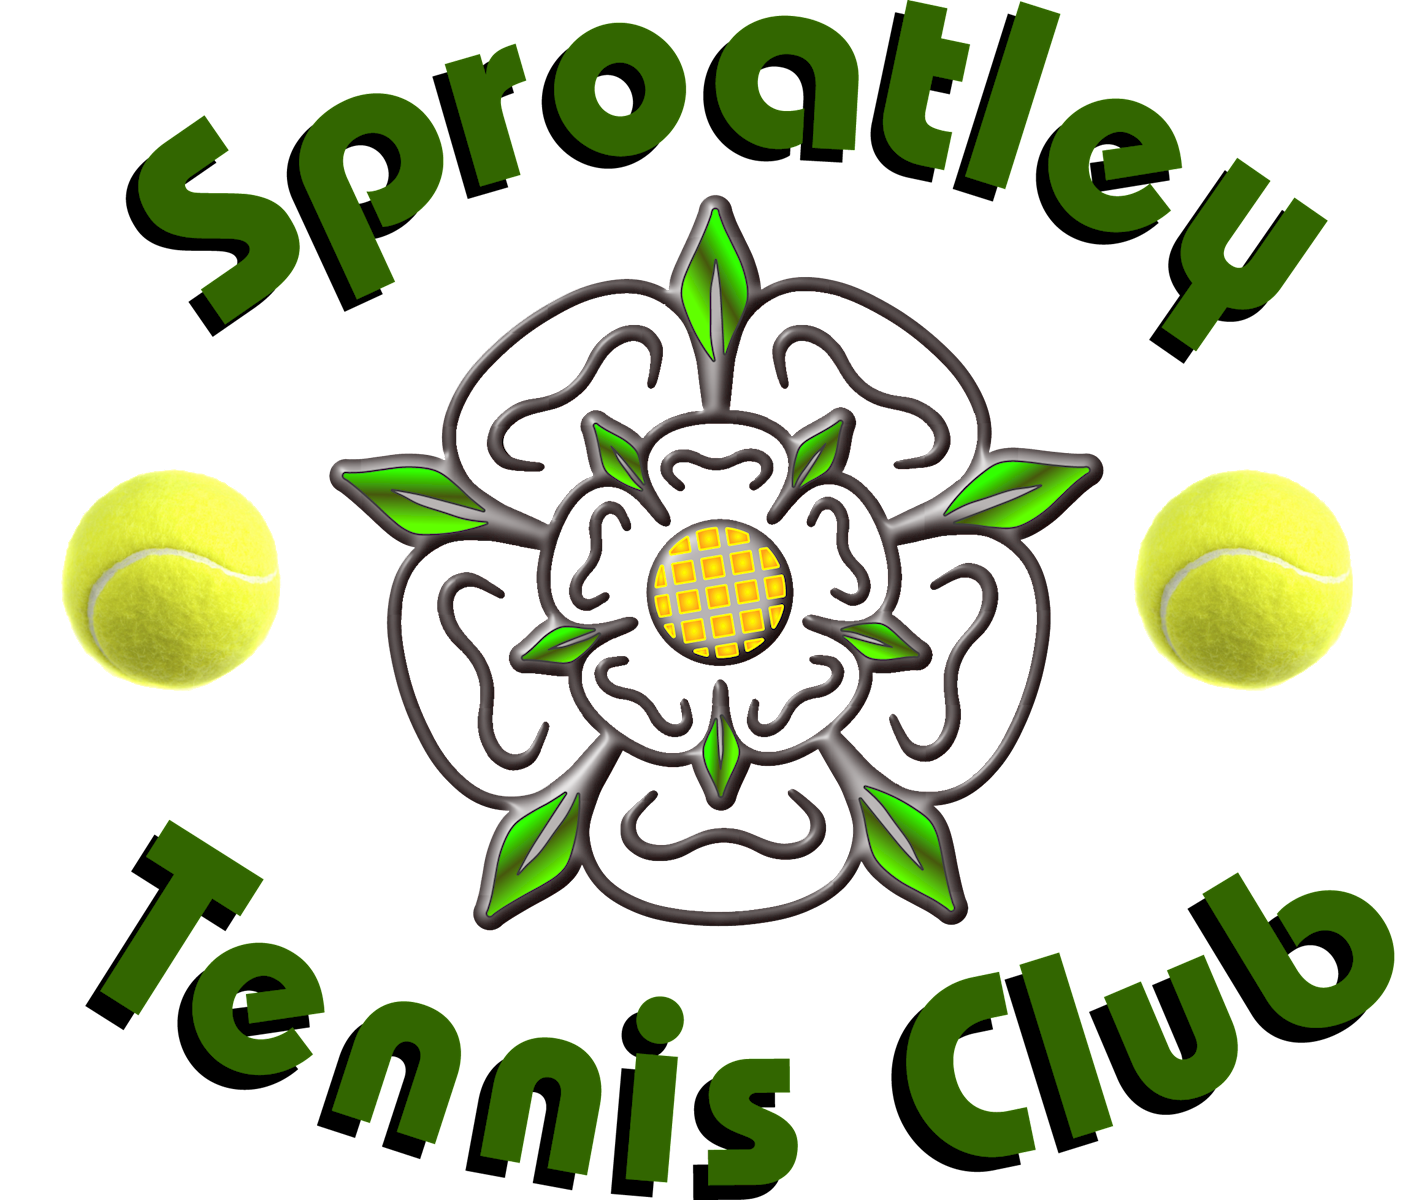 Sproatley Tennis Club